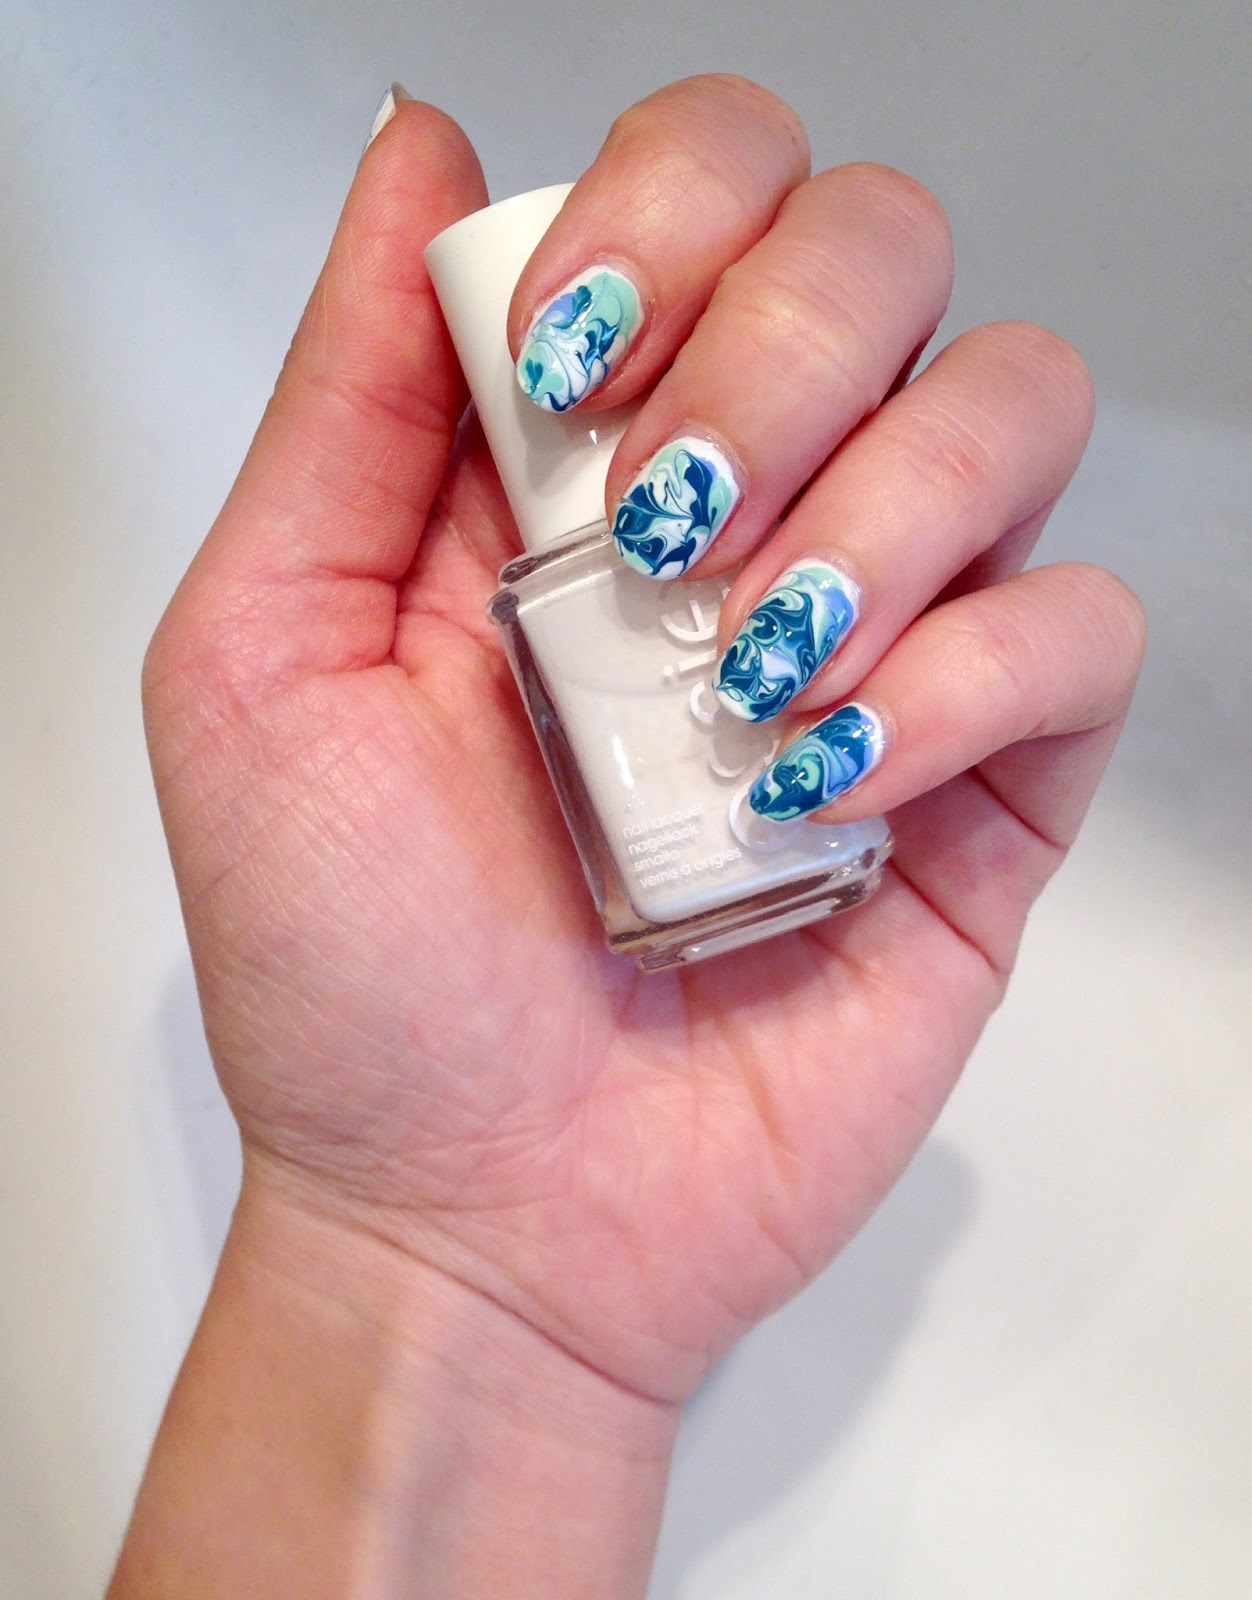 Water Marble Nails - Ohne Wasser! - Nails All Over